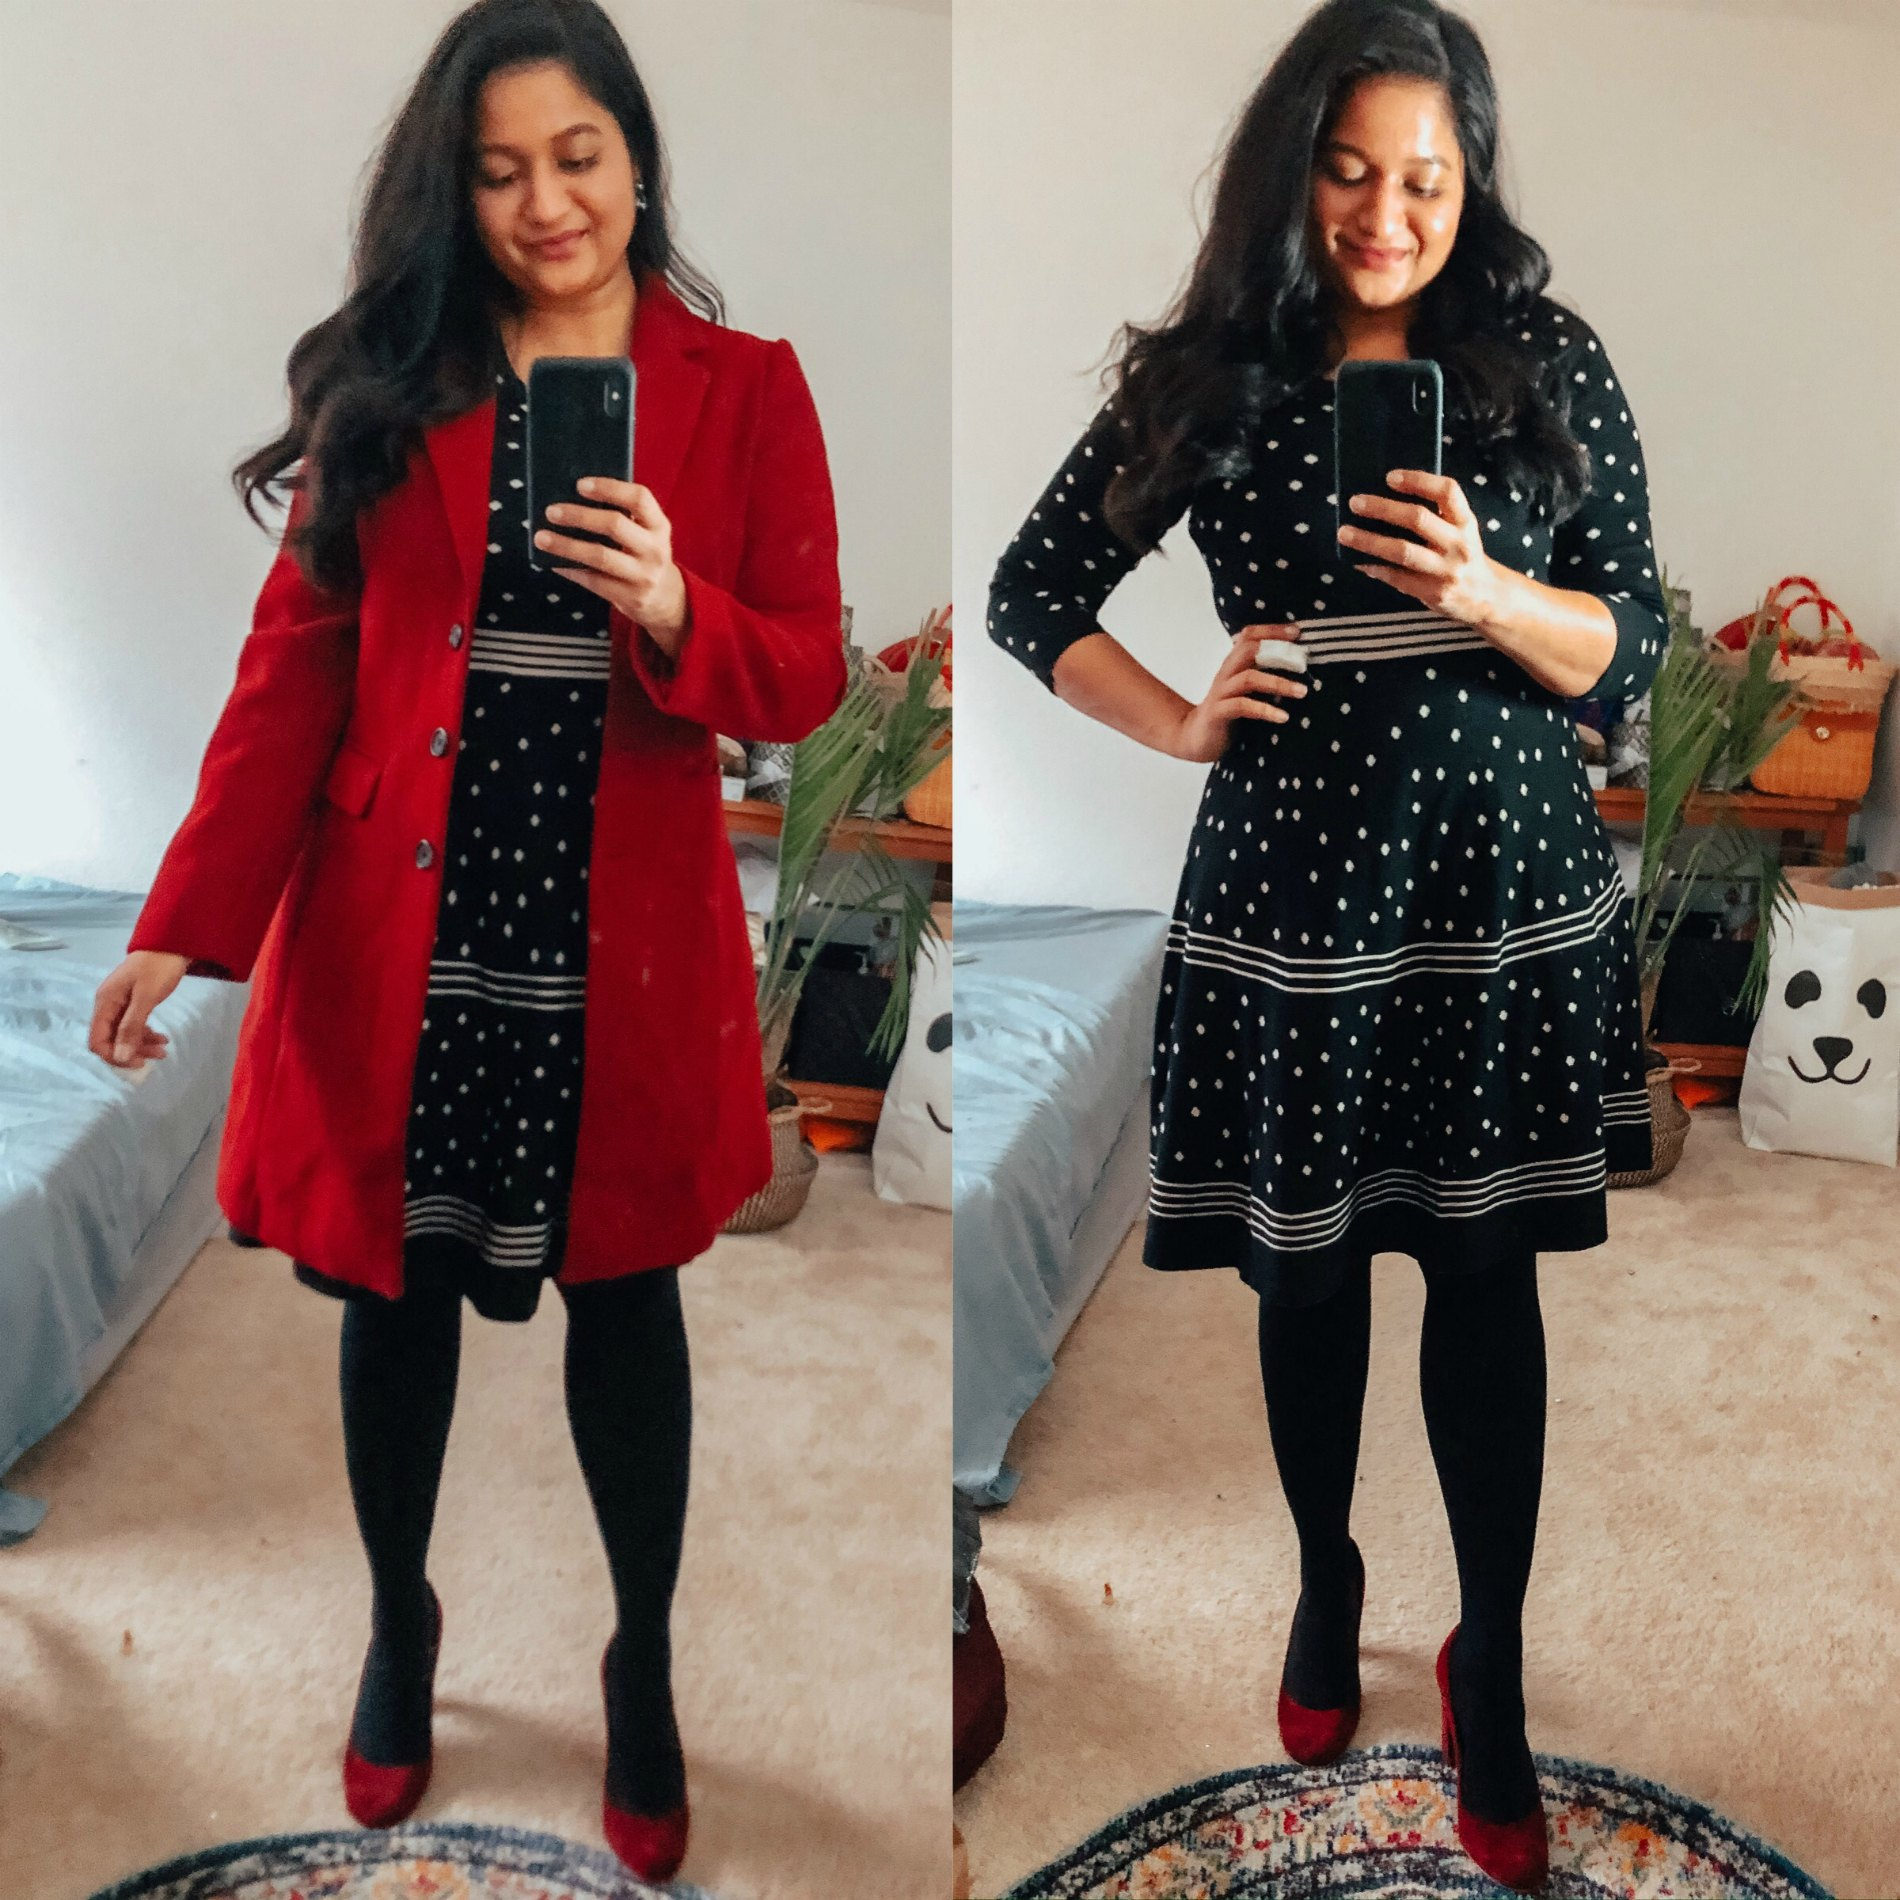 15 Cute Christmas Party Dresses Under $50 featured by top US modest fashion blog, Dreaming Loud: image of a woman wearing Liz Claiborne 34 Sleeve Stripe Dot Sweater Dress, Allegra K Women's Notched Lapel Single Breasted coat, Franci sarto red suede pumps